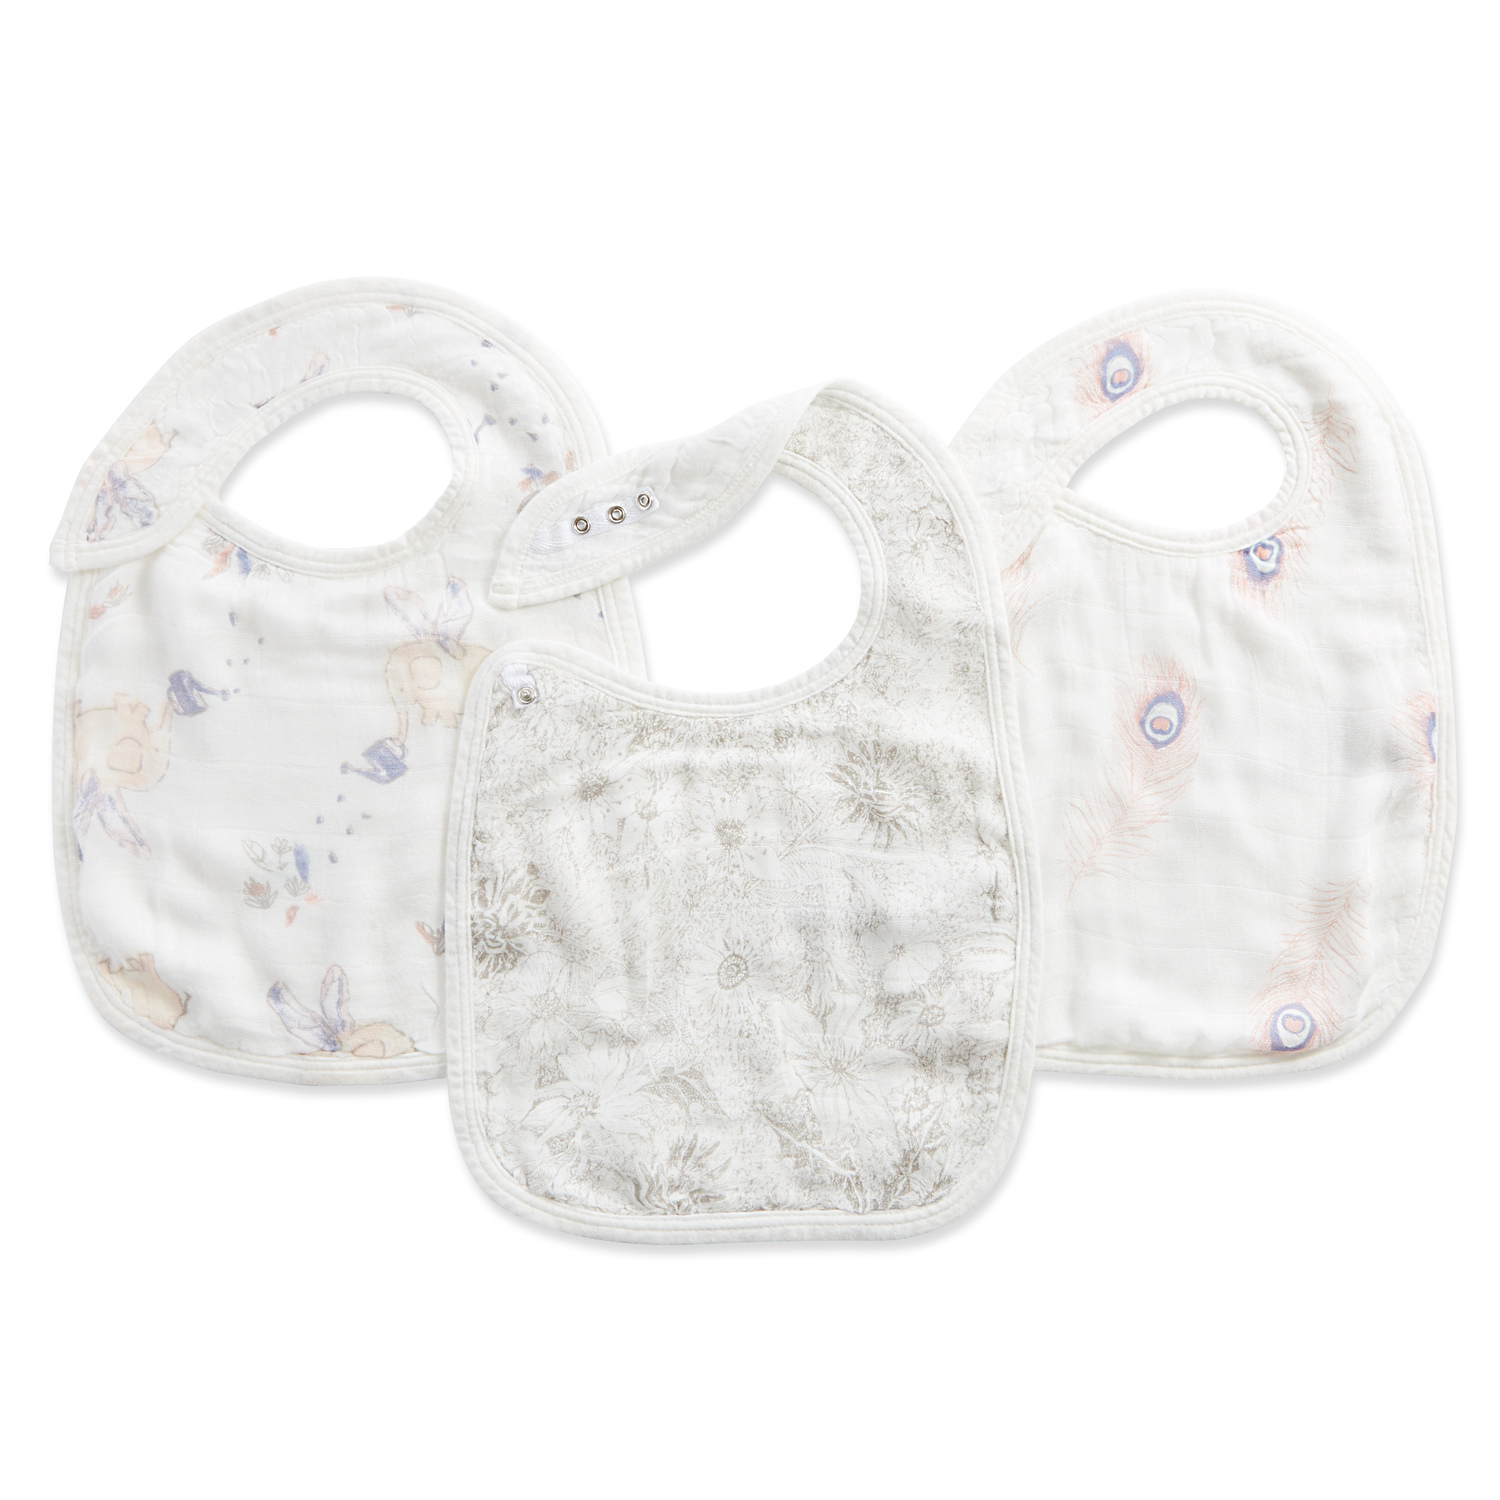 aden + anais silky soft snap bib 3 pack, featherlight